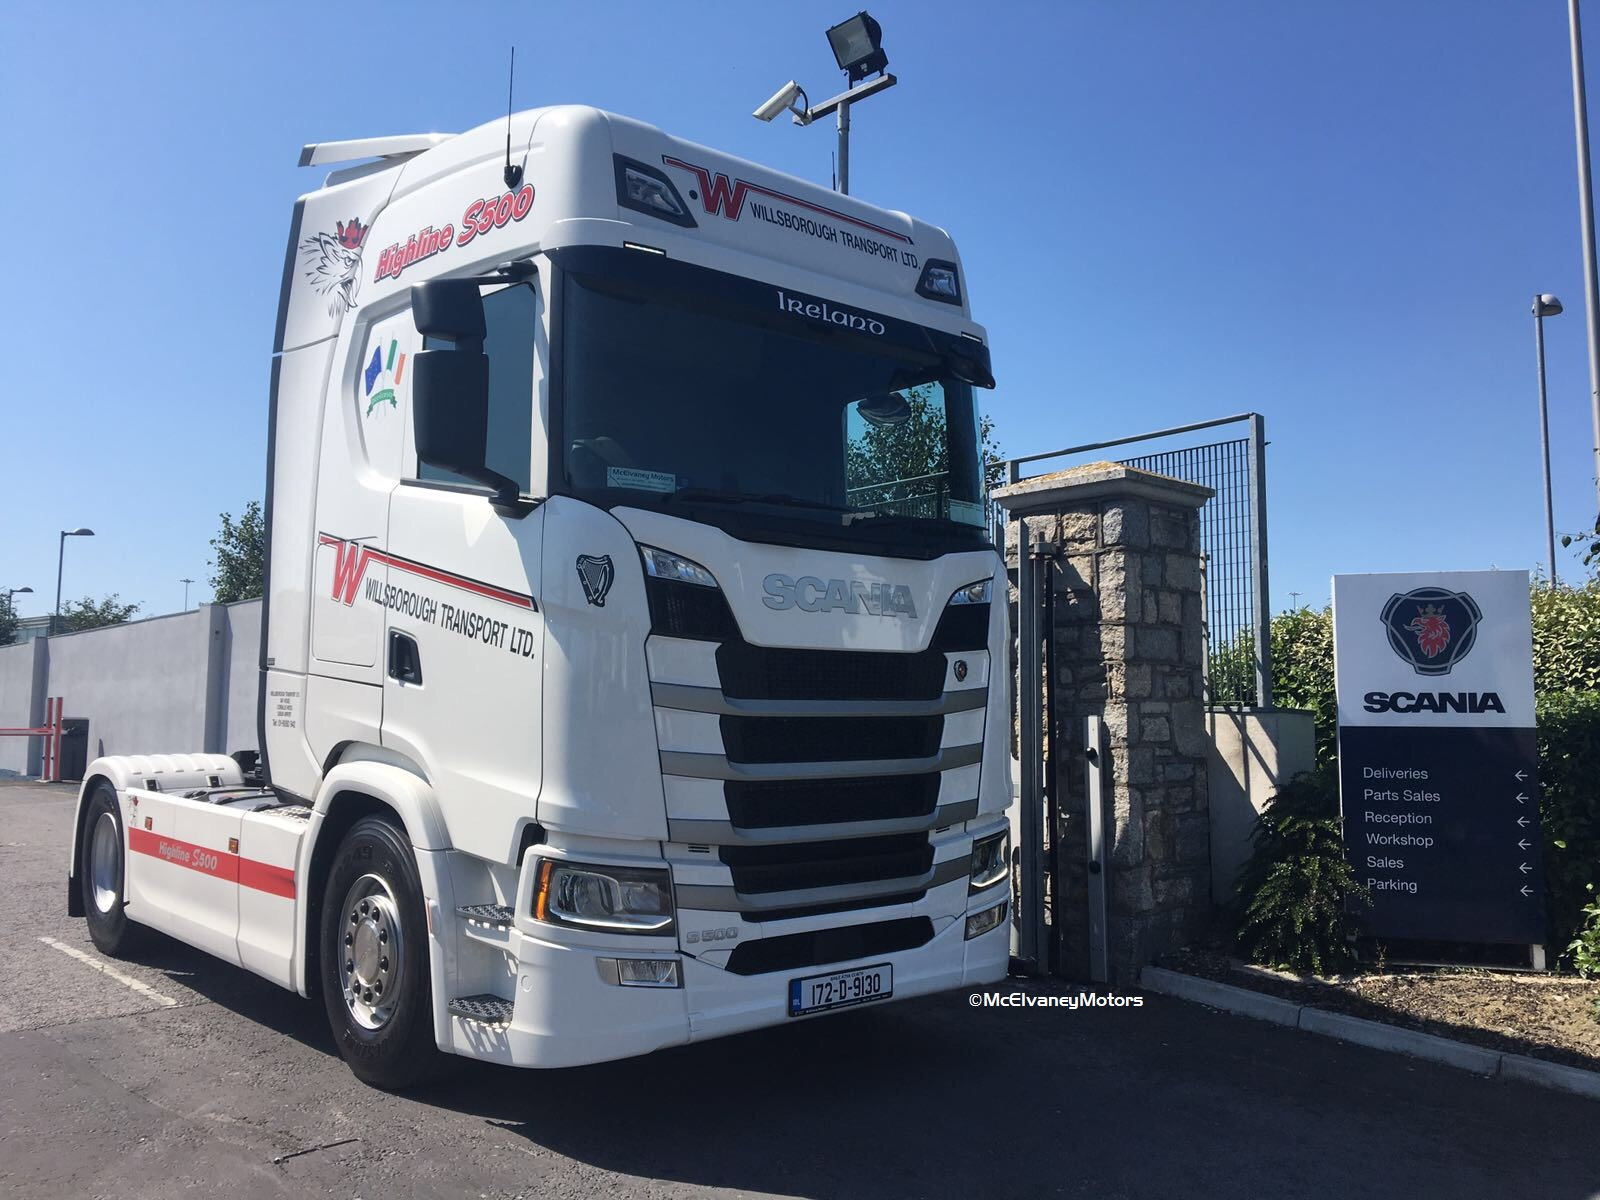 New Generation Scania S500 for Willsborough Transport!